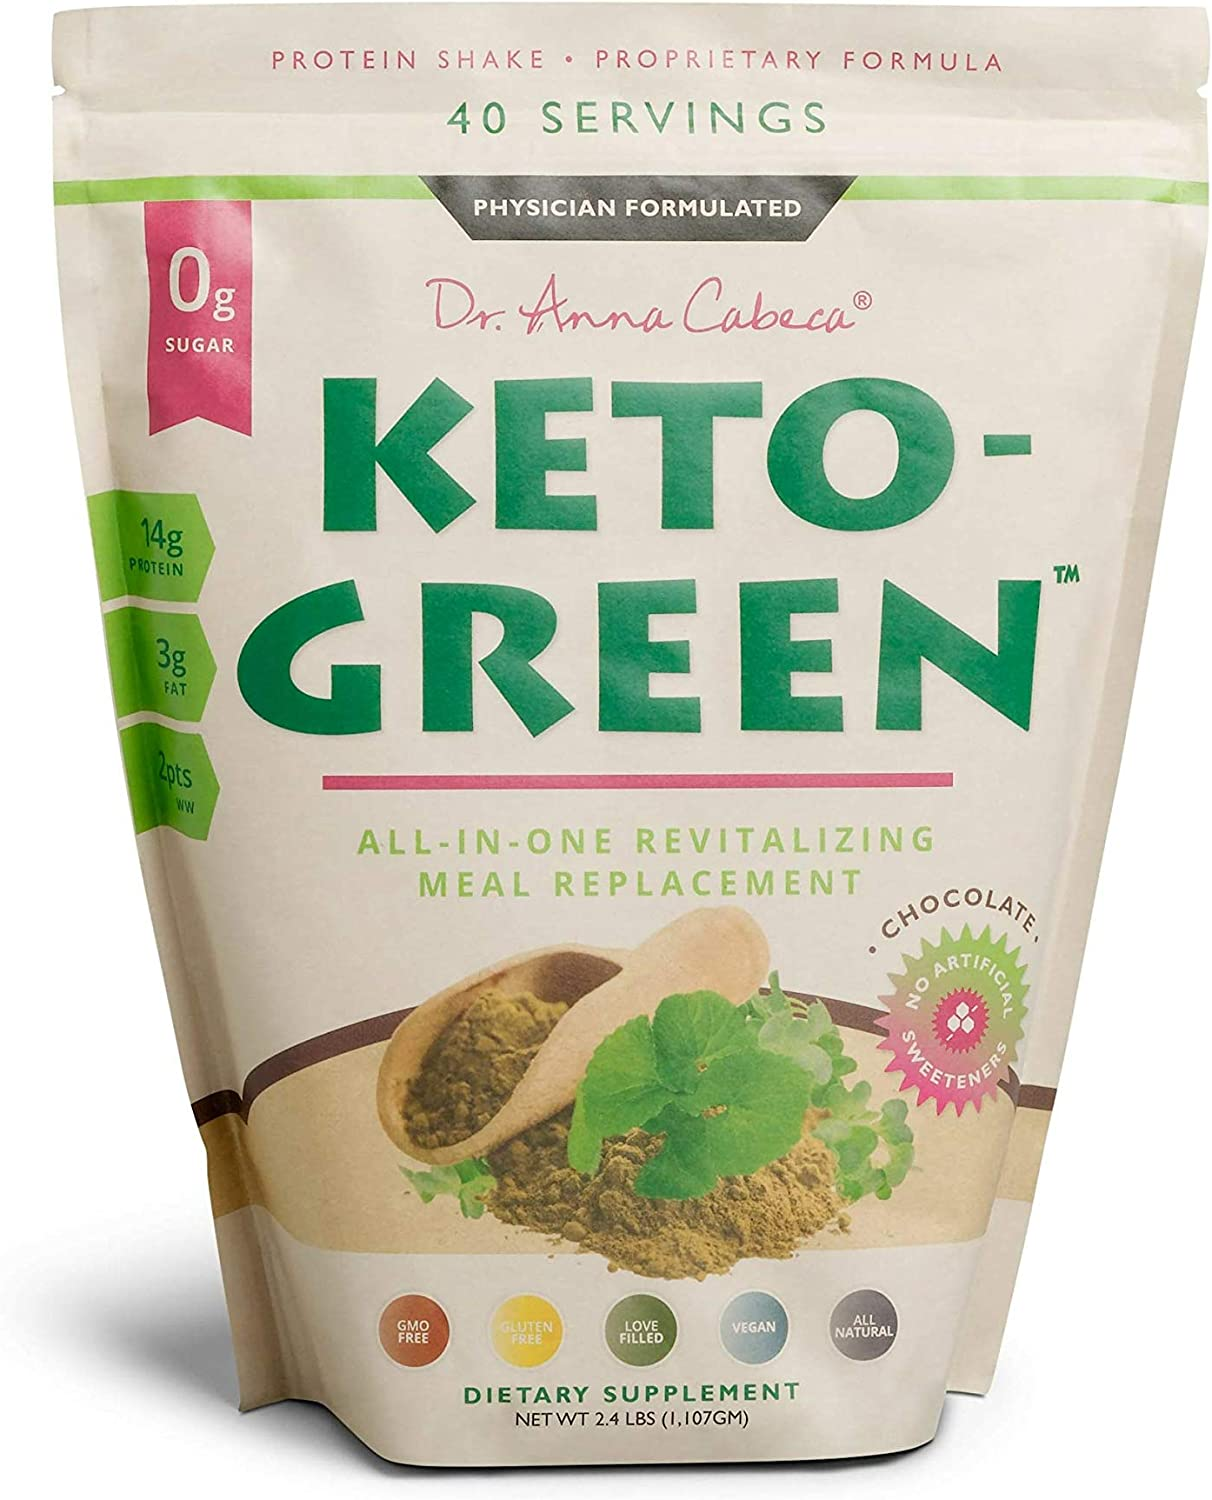 Keto Green Alkaline Protein Shake – Chocolate Ketogenic Protein Powder Drink, Lactose Free Vegan Protein, Supports Gastrointestinal Health, Aides Natural Body Detoxification -Single Pouch 40 Servings